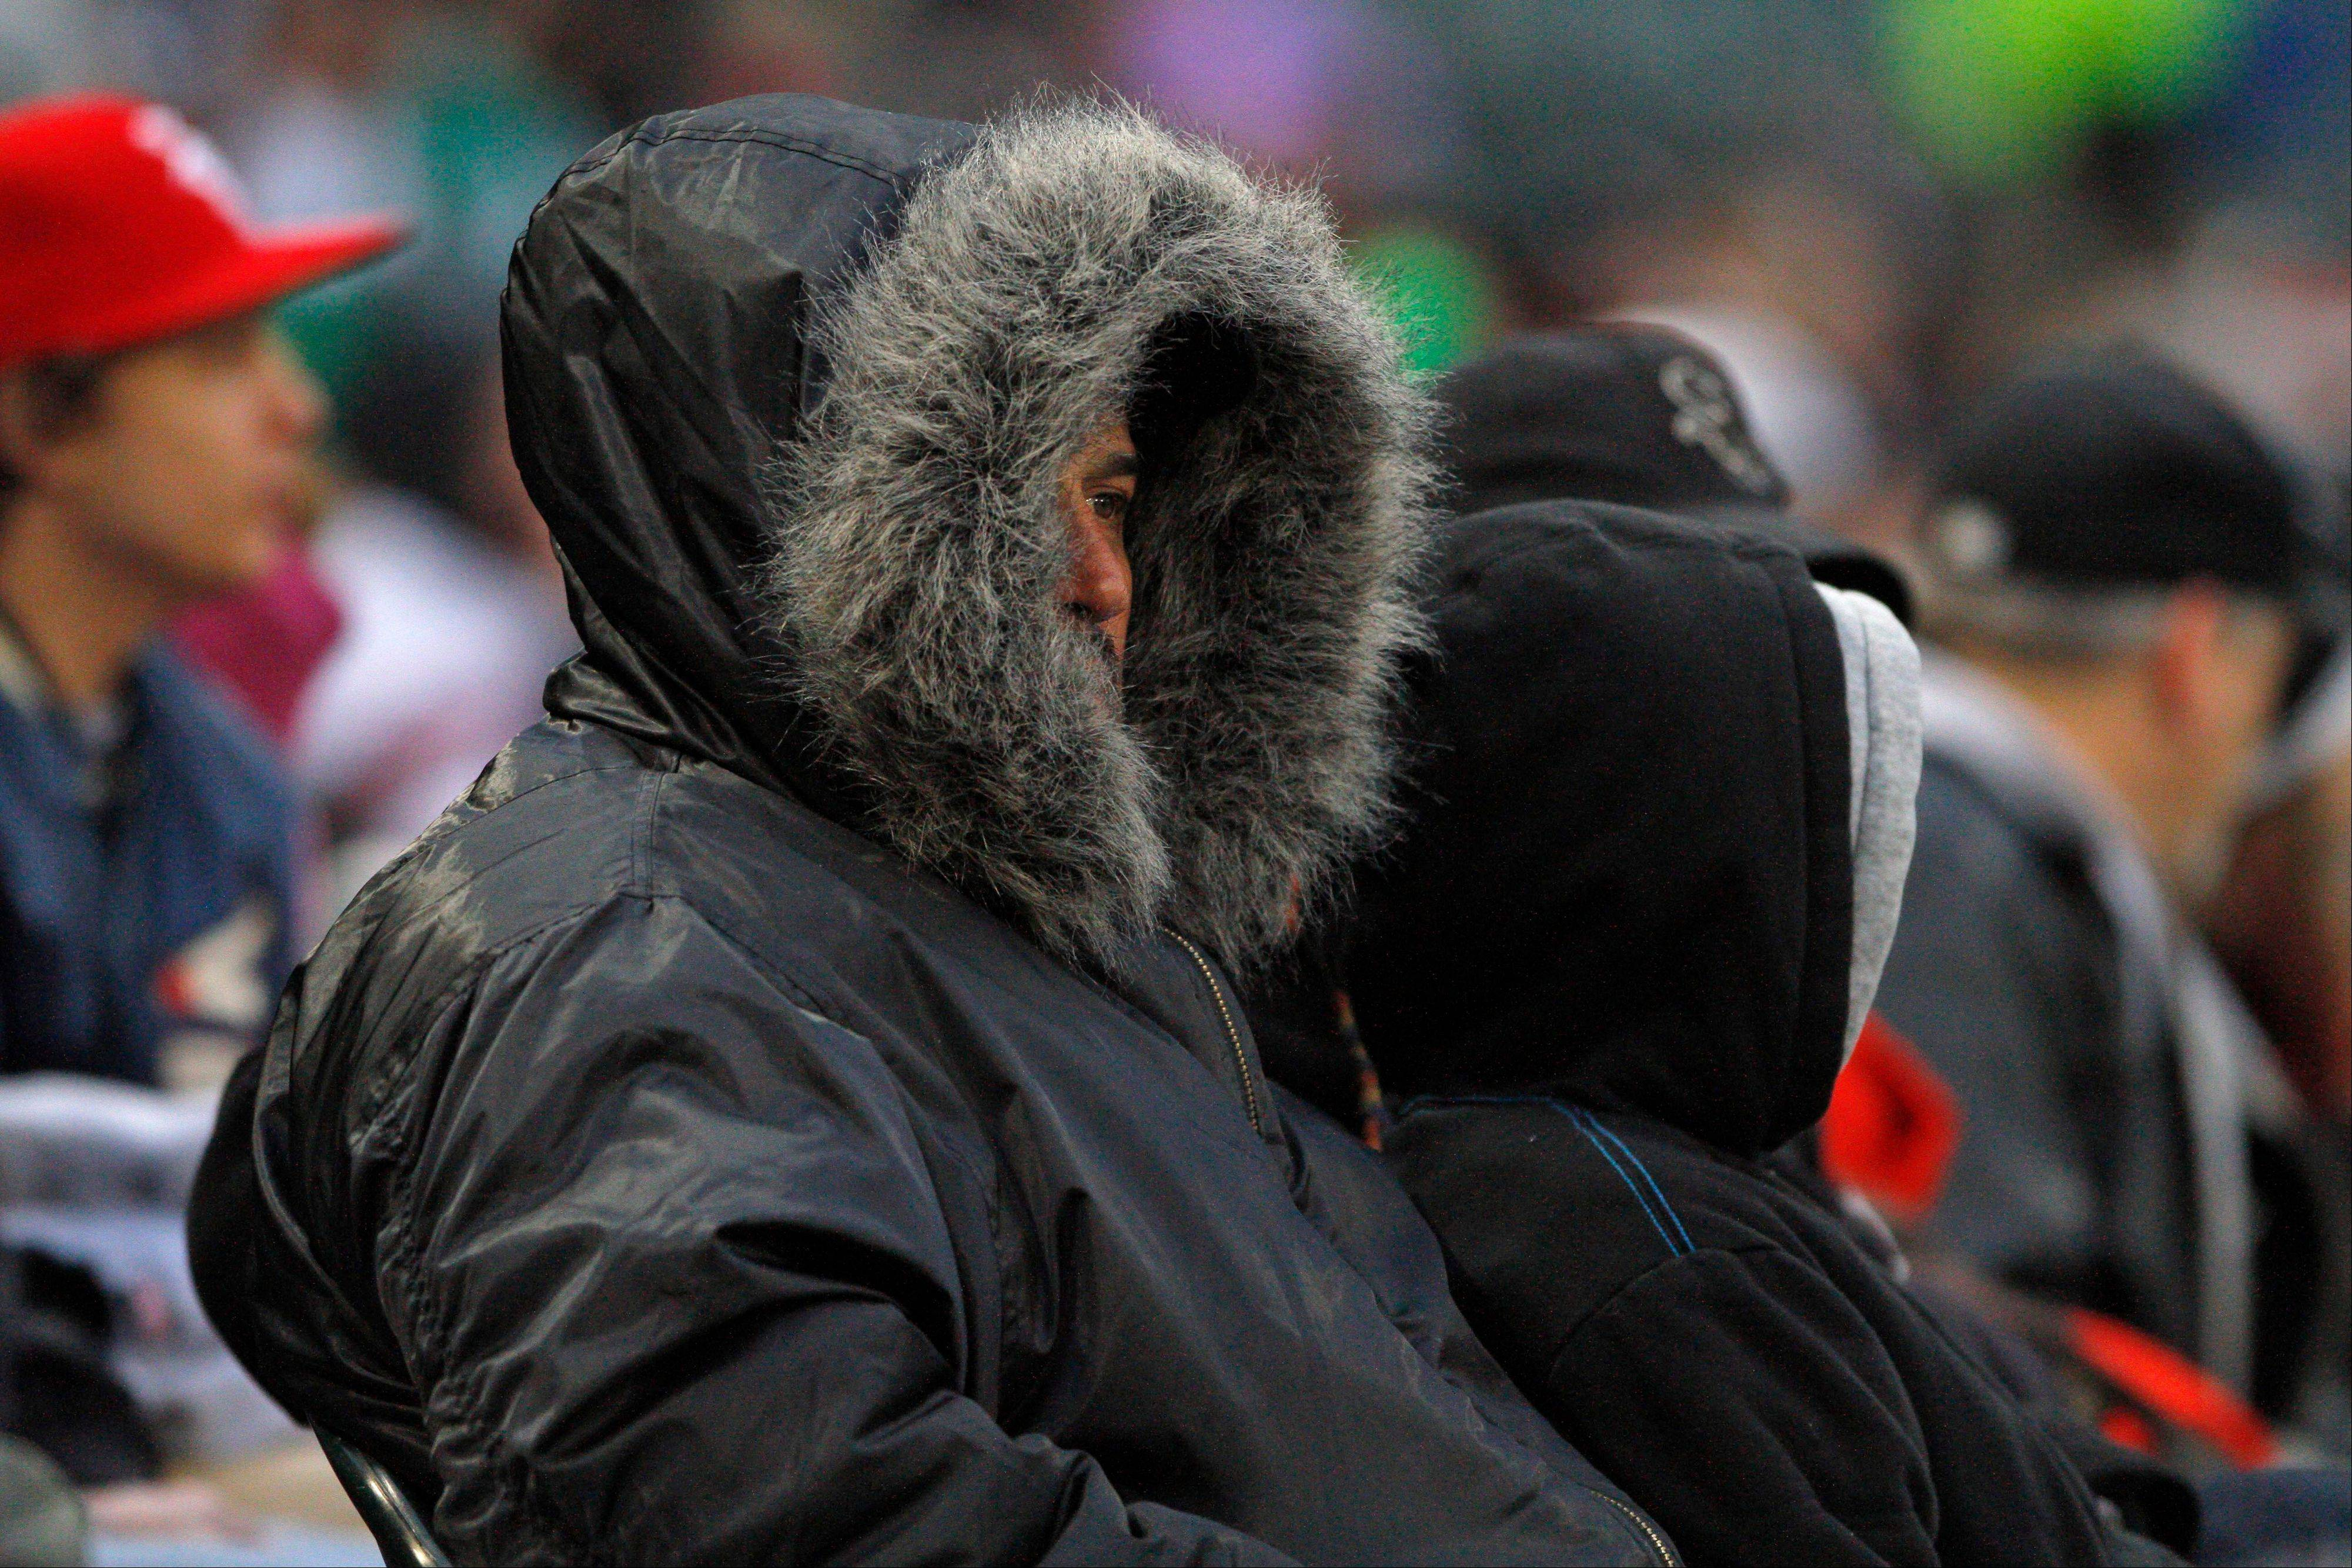 Fans bundle up as the temperature dipped below 40 degrees during a baseball game between the Chicago White Sox and the Los Angeles Angels in Chicago on Friday, May 10, 2013.